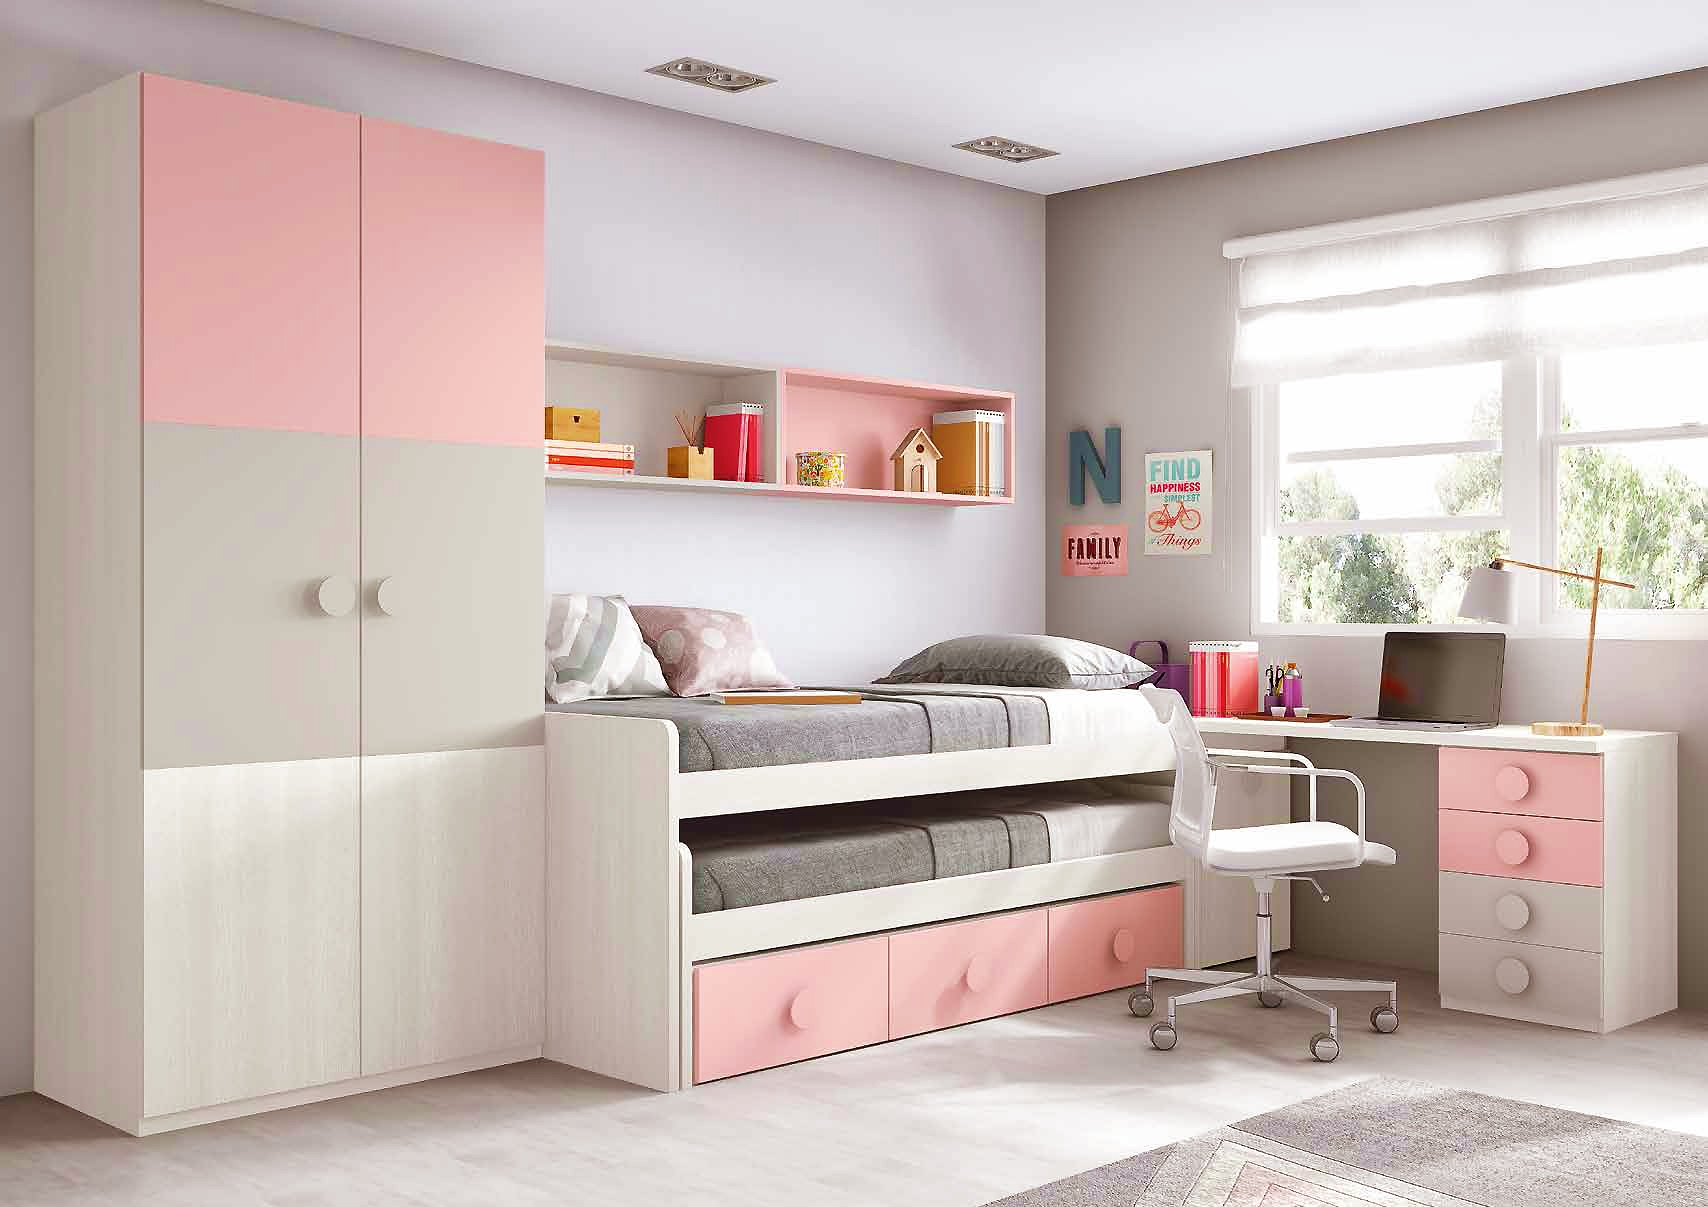 tete de lit chambre ado tte de lit en palette avec imprim jackson lit pour adolescent ultra. Black Bedroom Furniture Sets. Home Design Ideas